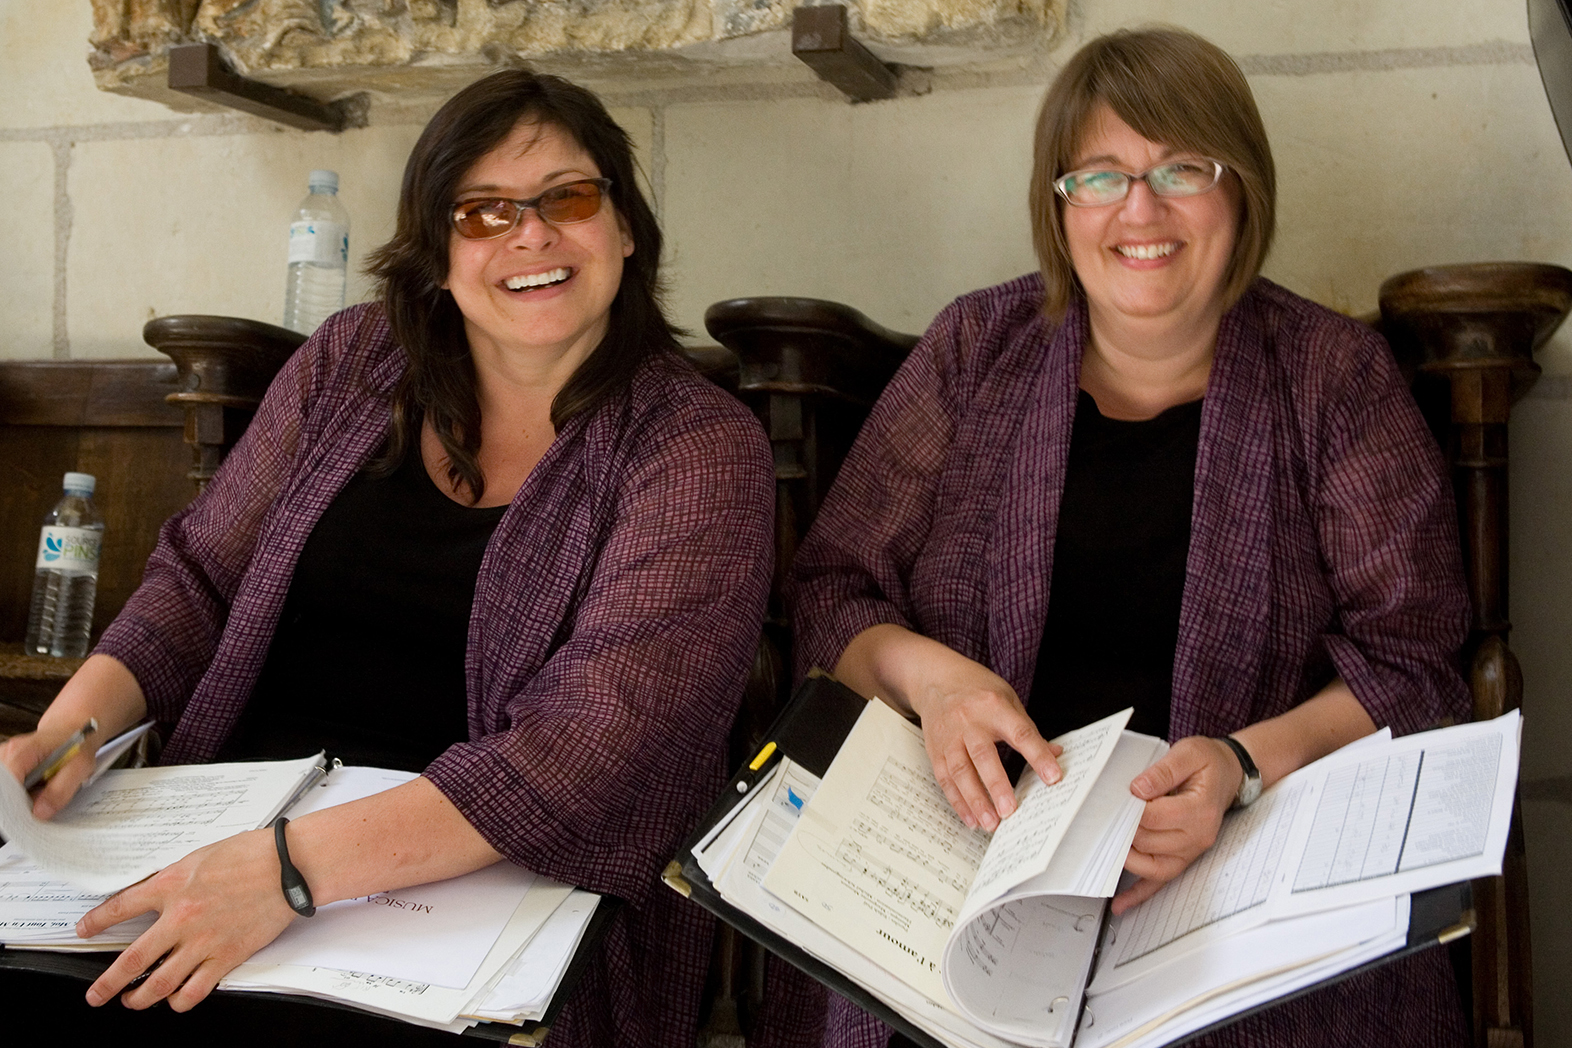 Two choir members in matching ensemble attire sitting on a pew in a church with their music binders on their laps, smiling and laughing for the camera